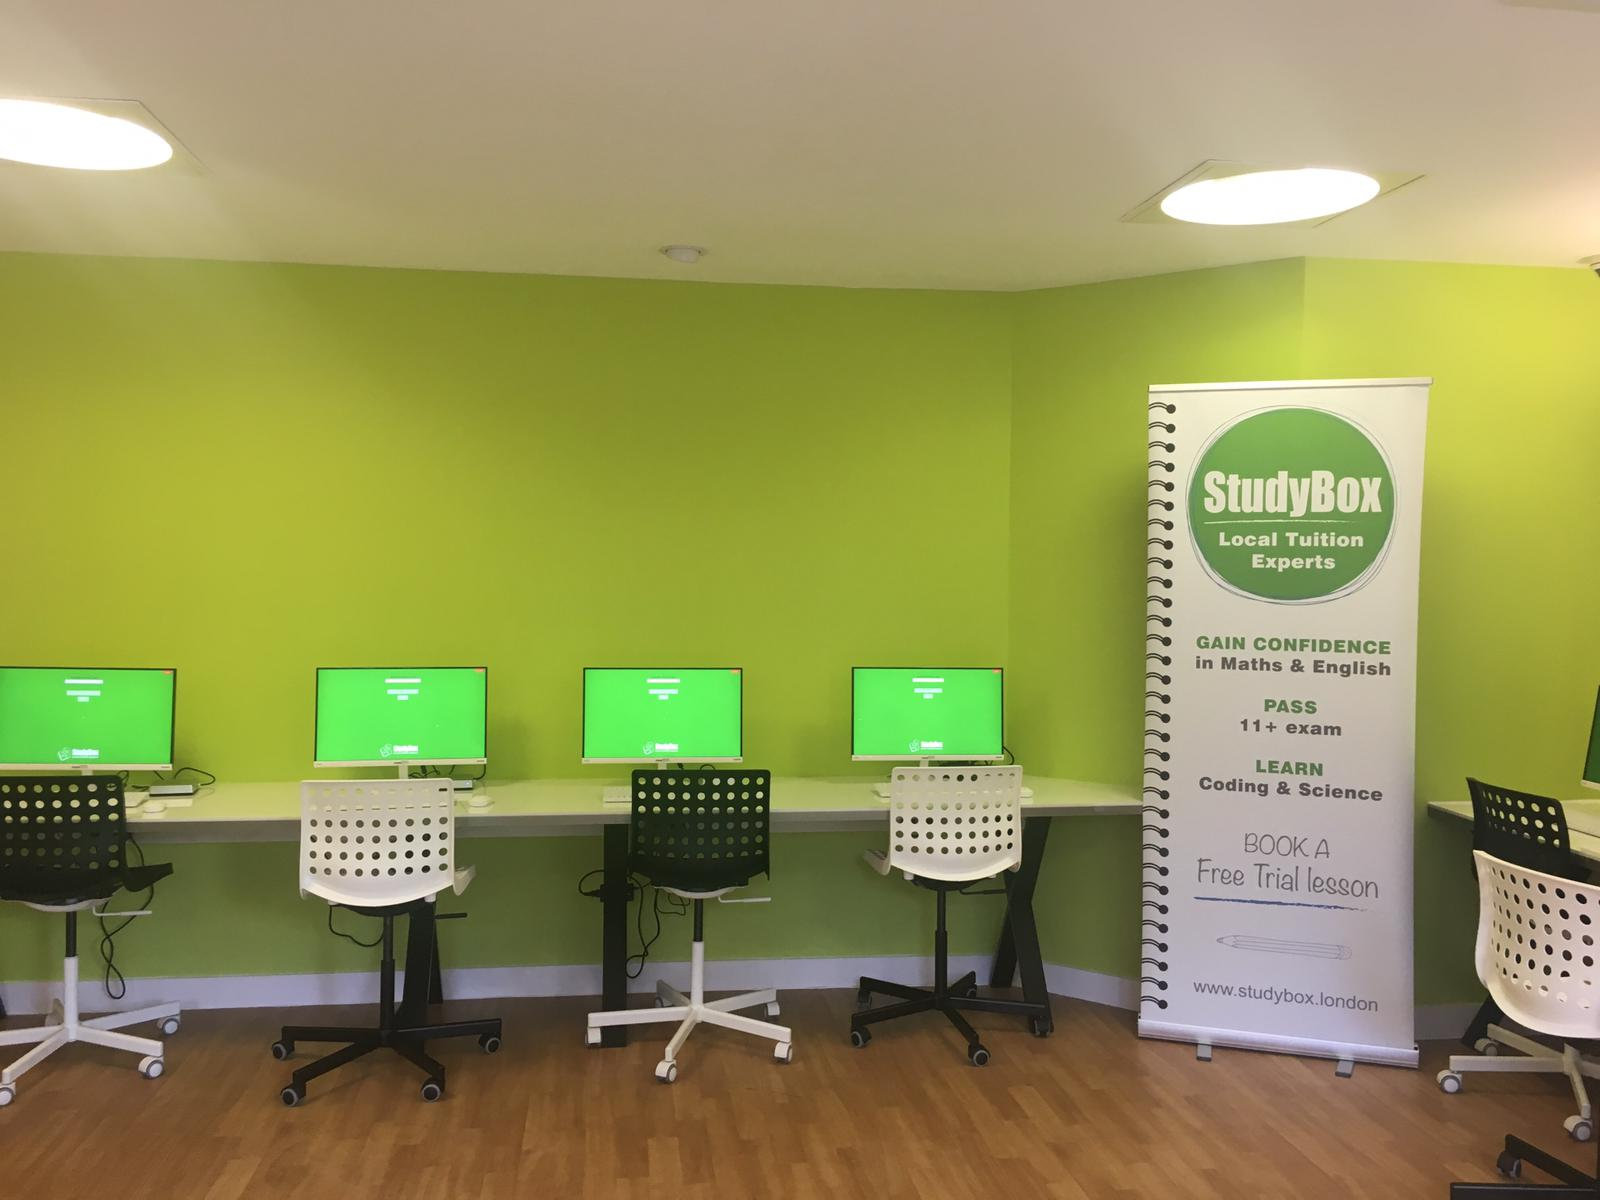 Image of the new StudyBox Centre in Battersea.